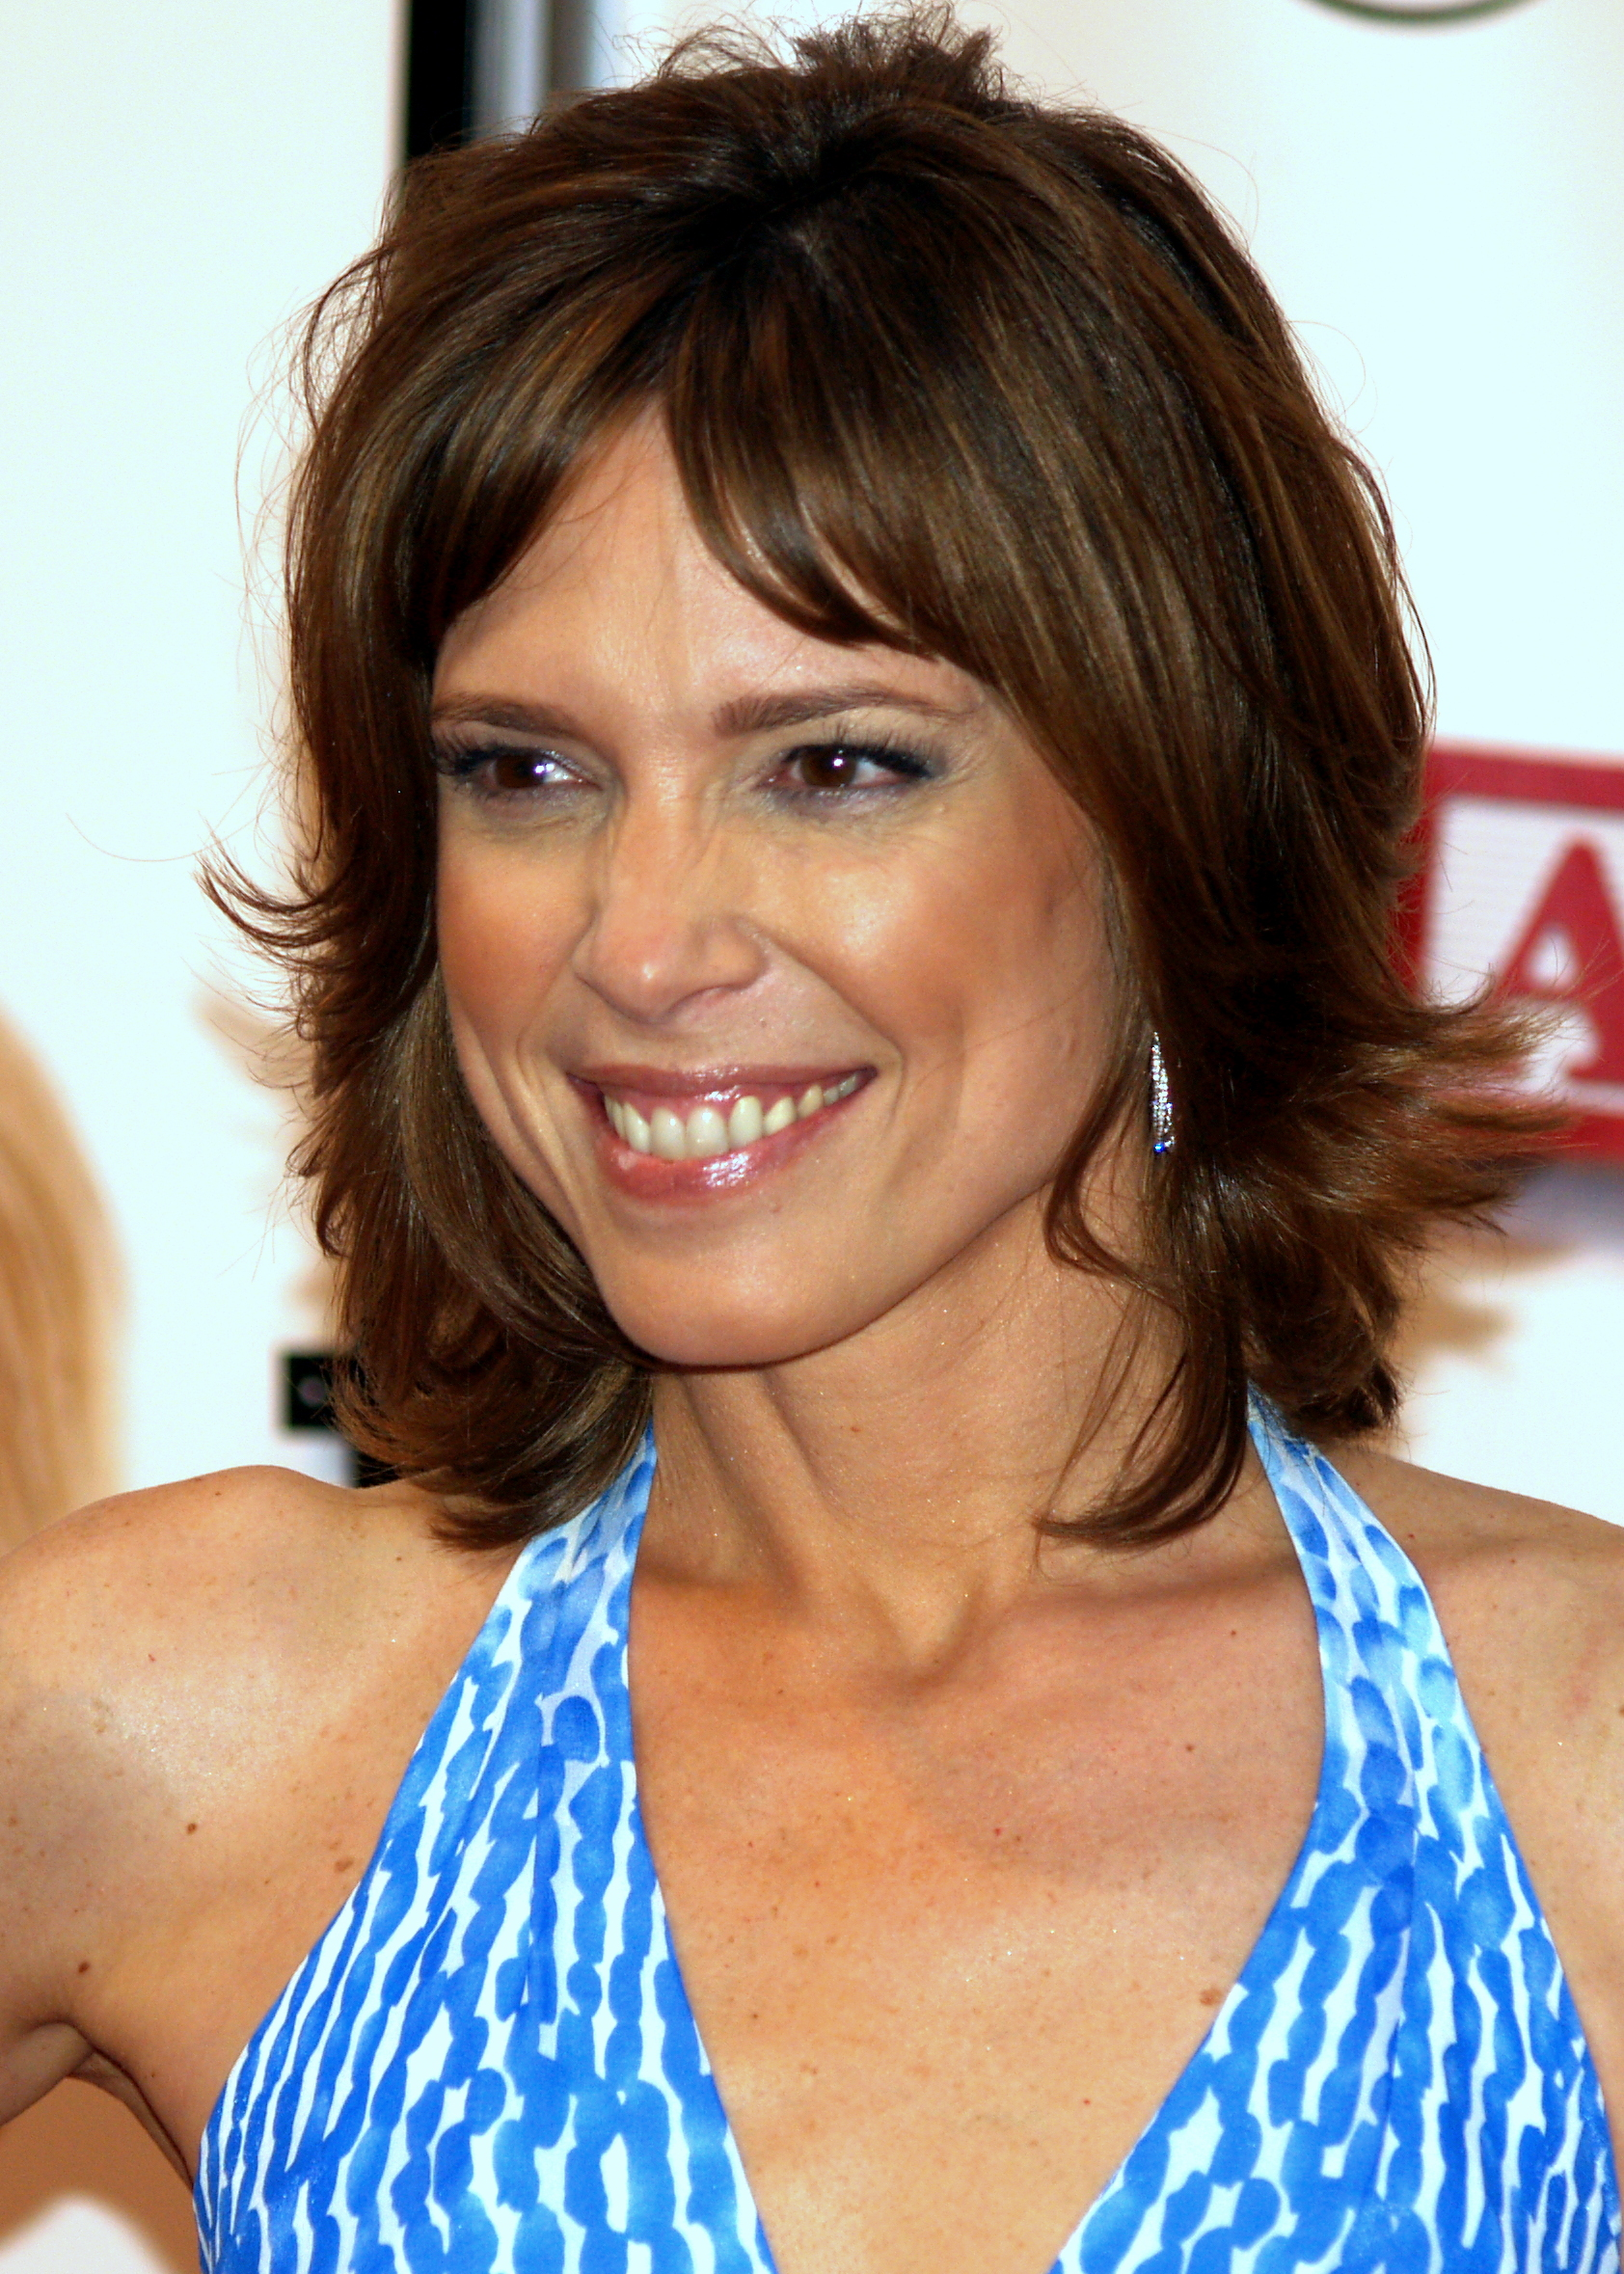 Hannah Storm - Wikipedia, the free encyclopedia